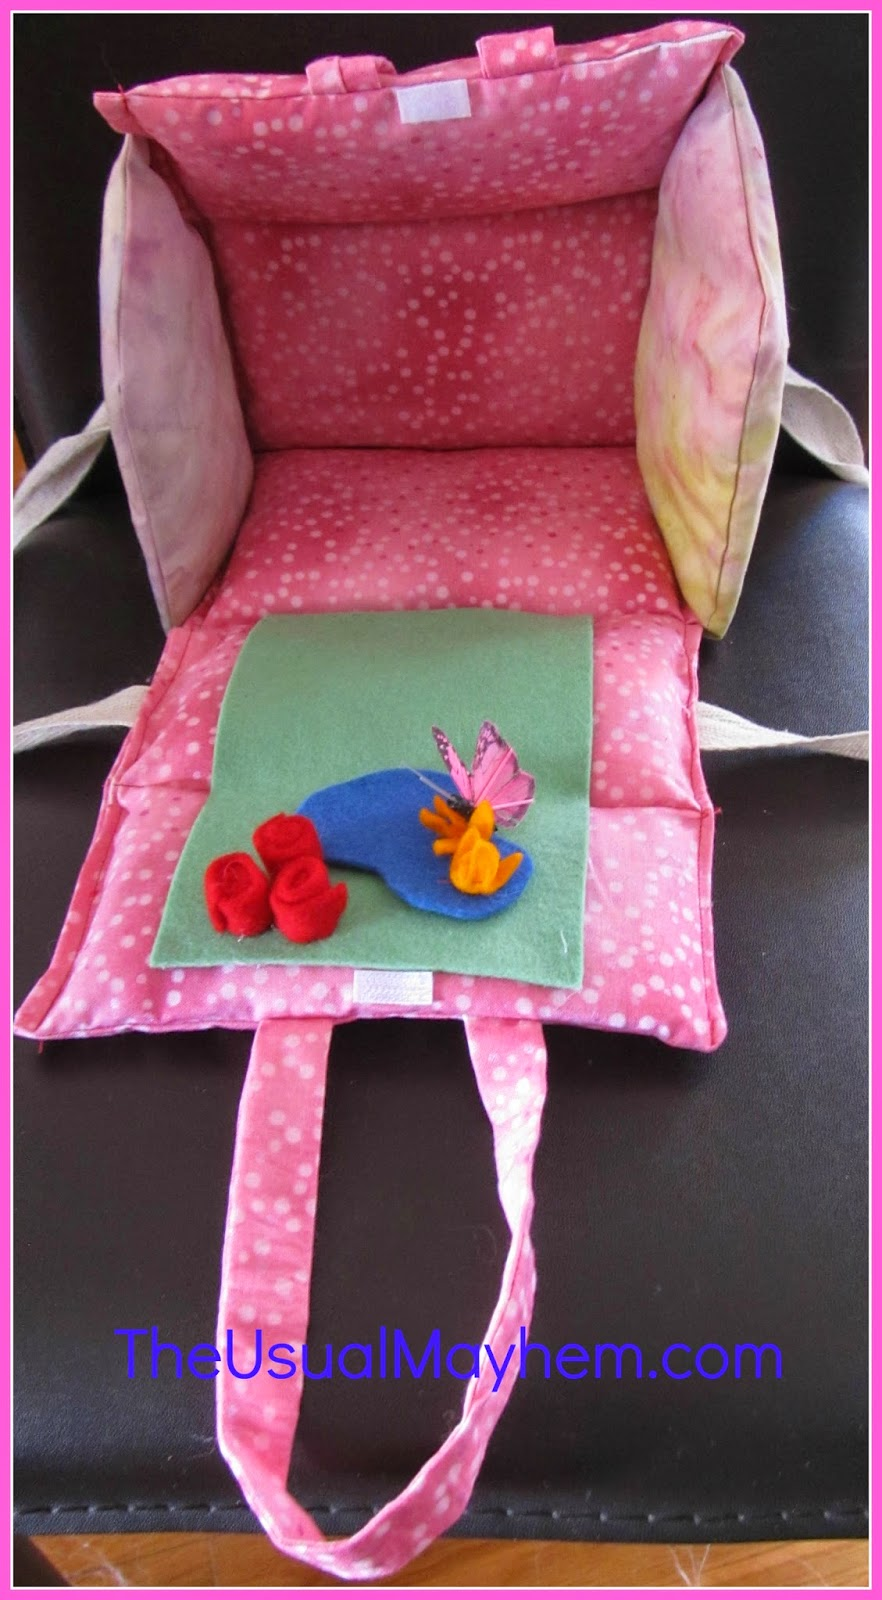 Easy Christmas gift to sew: Portable dollhouse - The Usual Mayhem